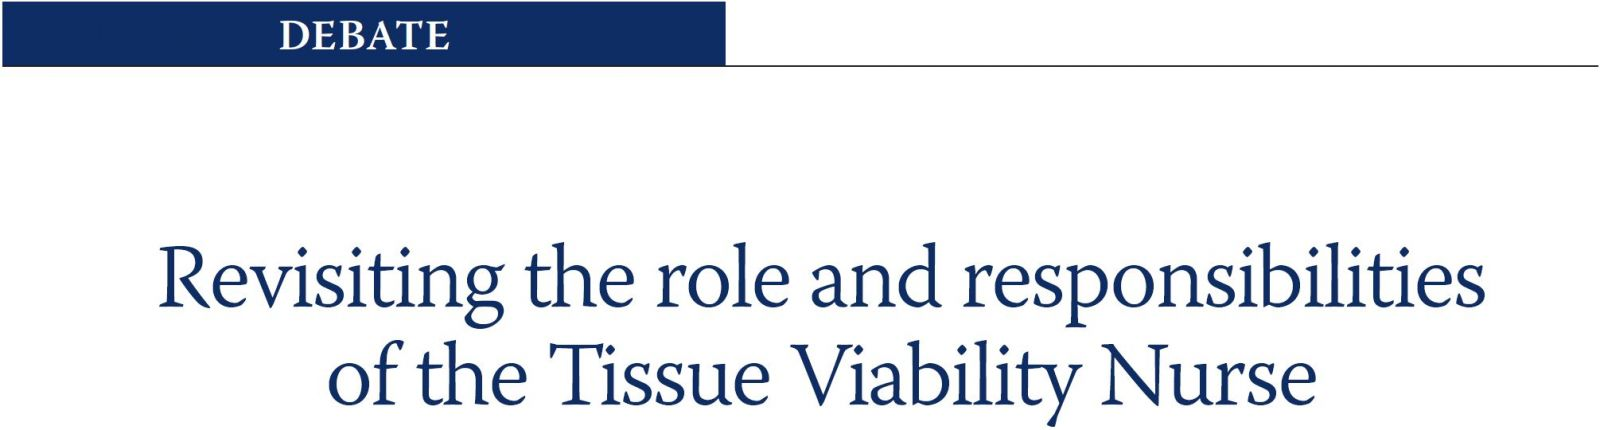 Revisiting the role and responsibilities of the Tissue Viability Nurse